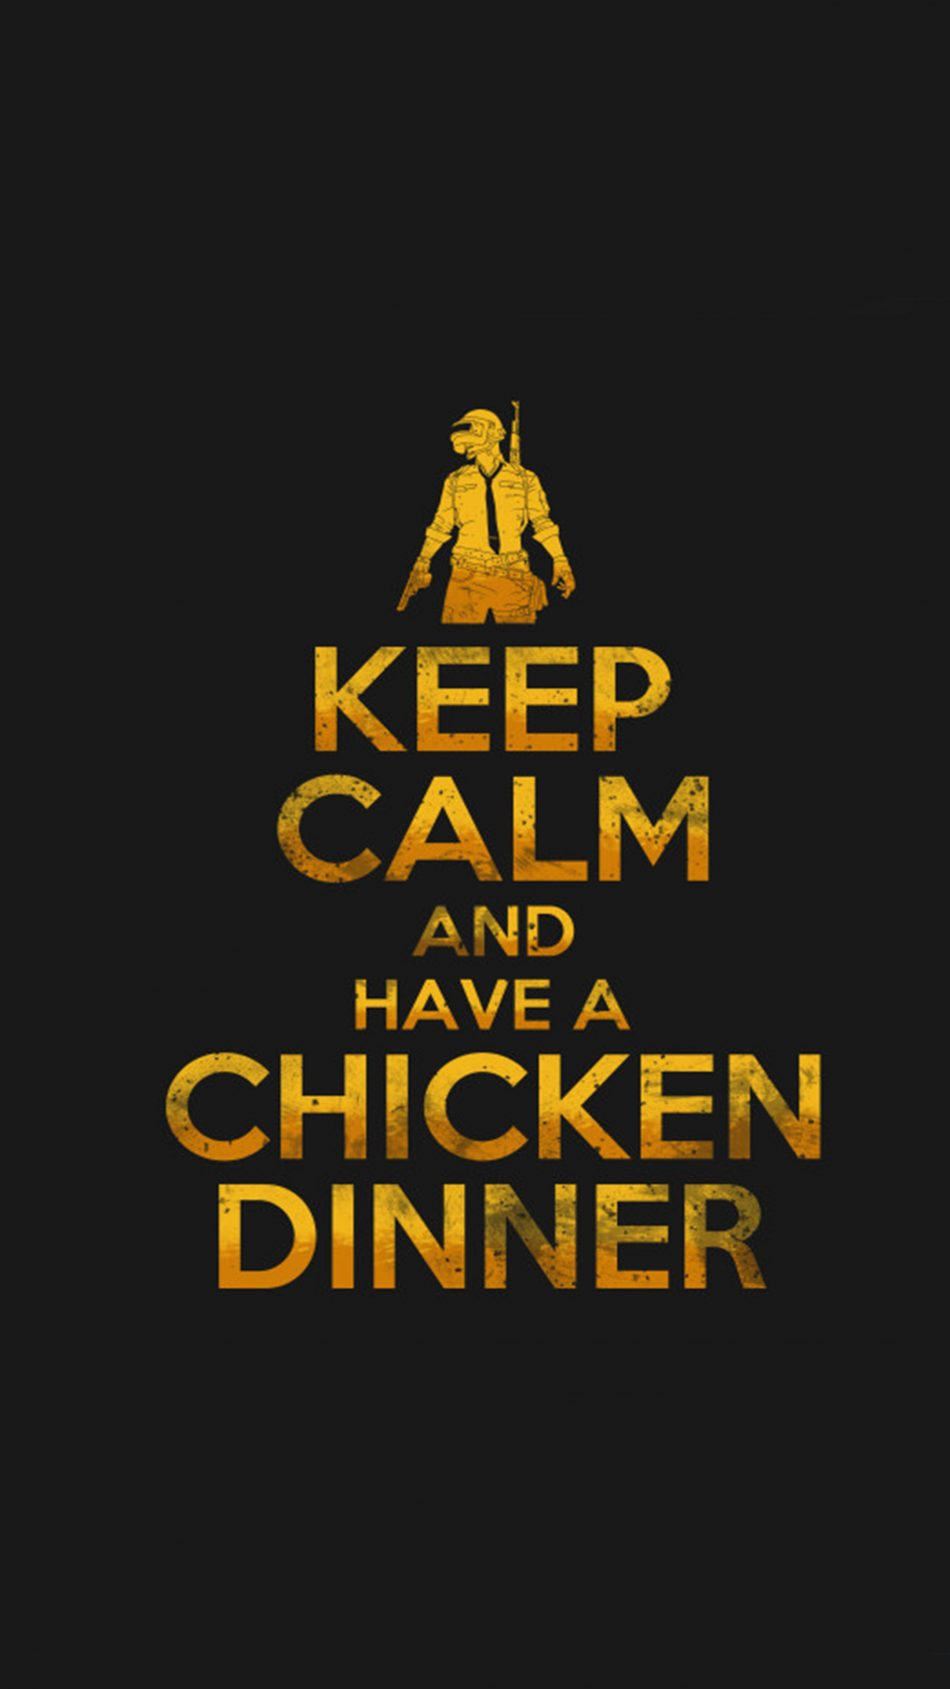 PUBG Keep Calm And Have A Chicken Dinner 4K Ultra HD Mobile Wallpaper